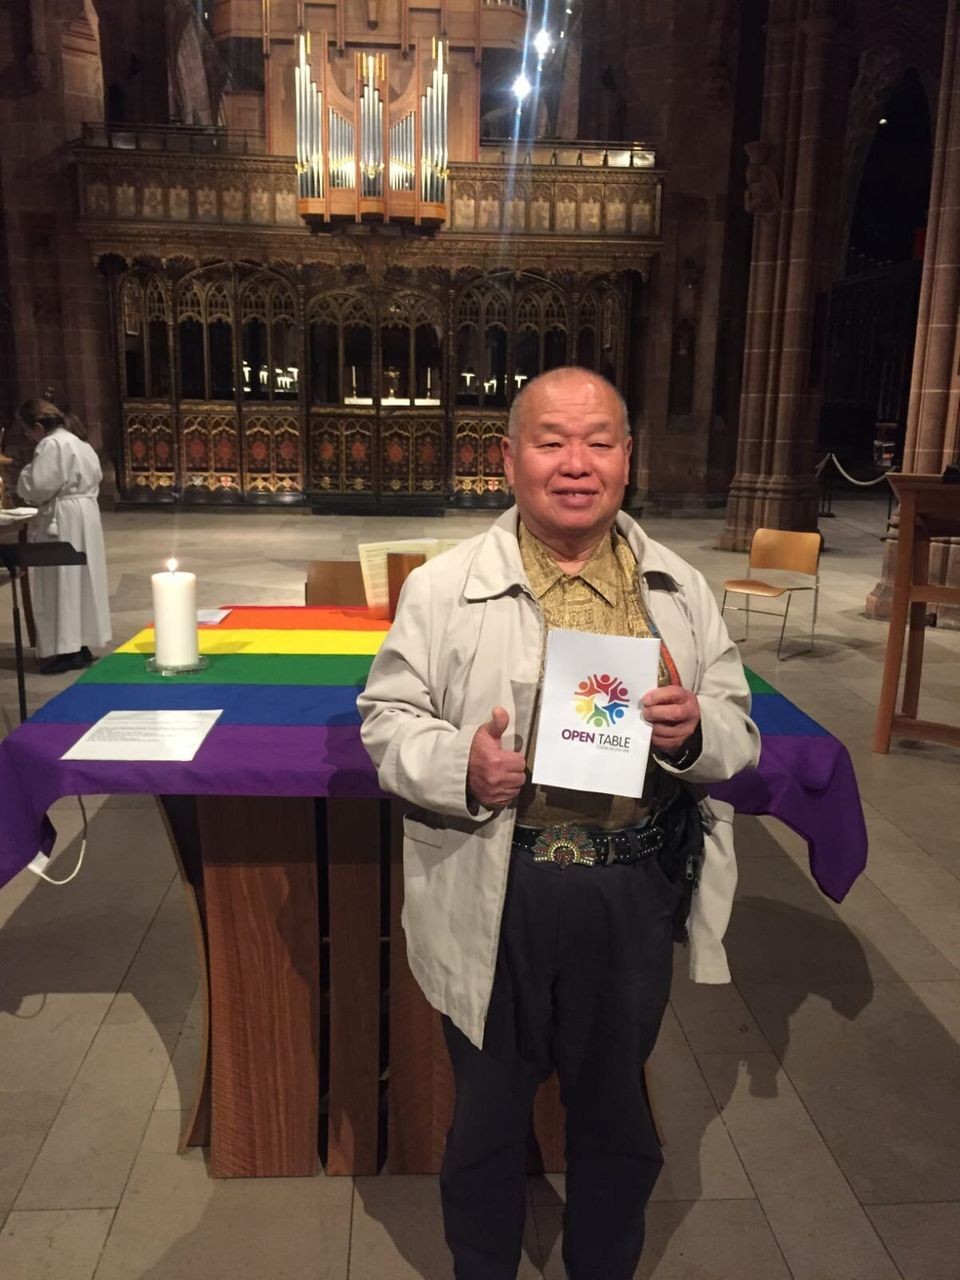 Sam atan Open Table communion service at Manchester Cathedral in September